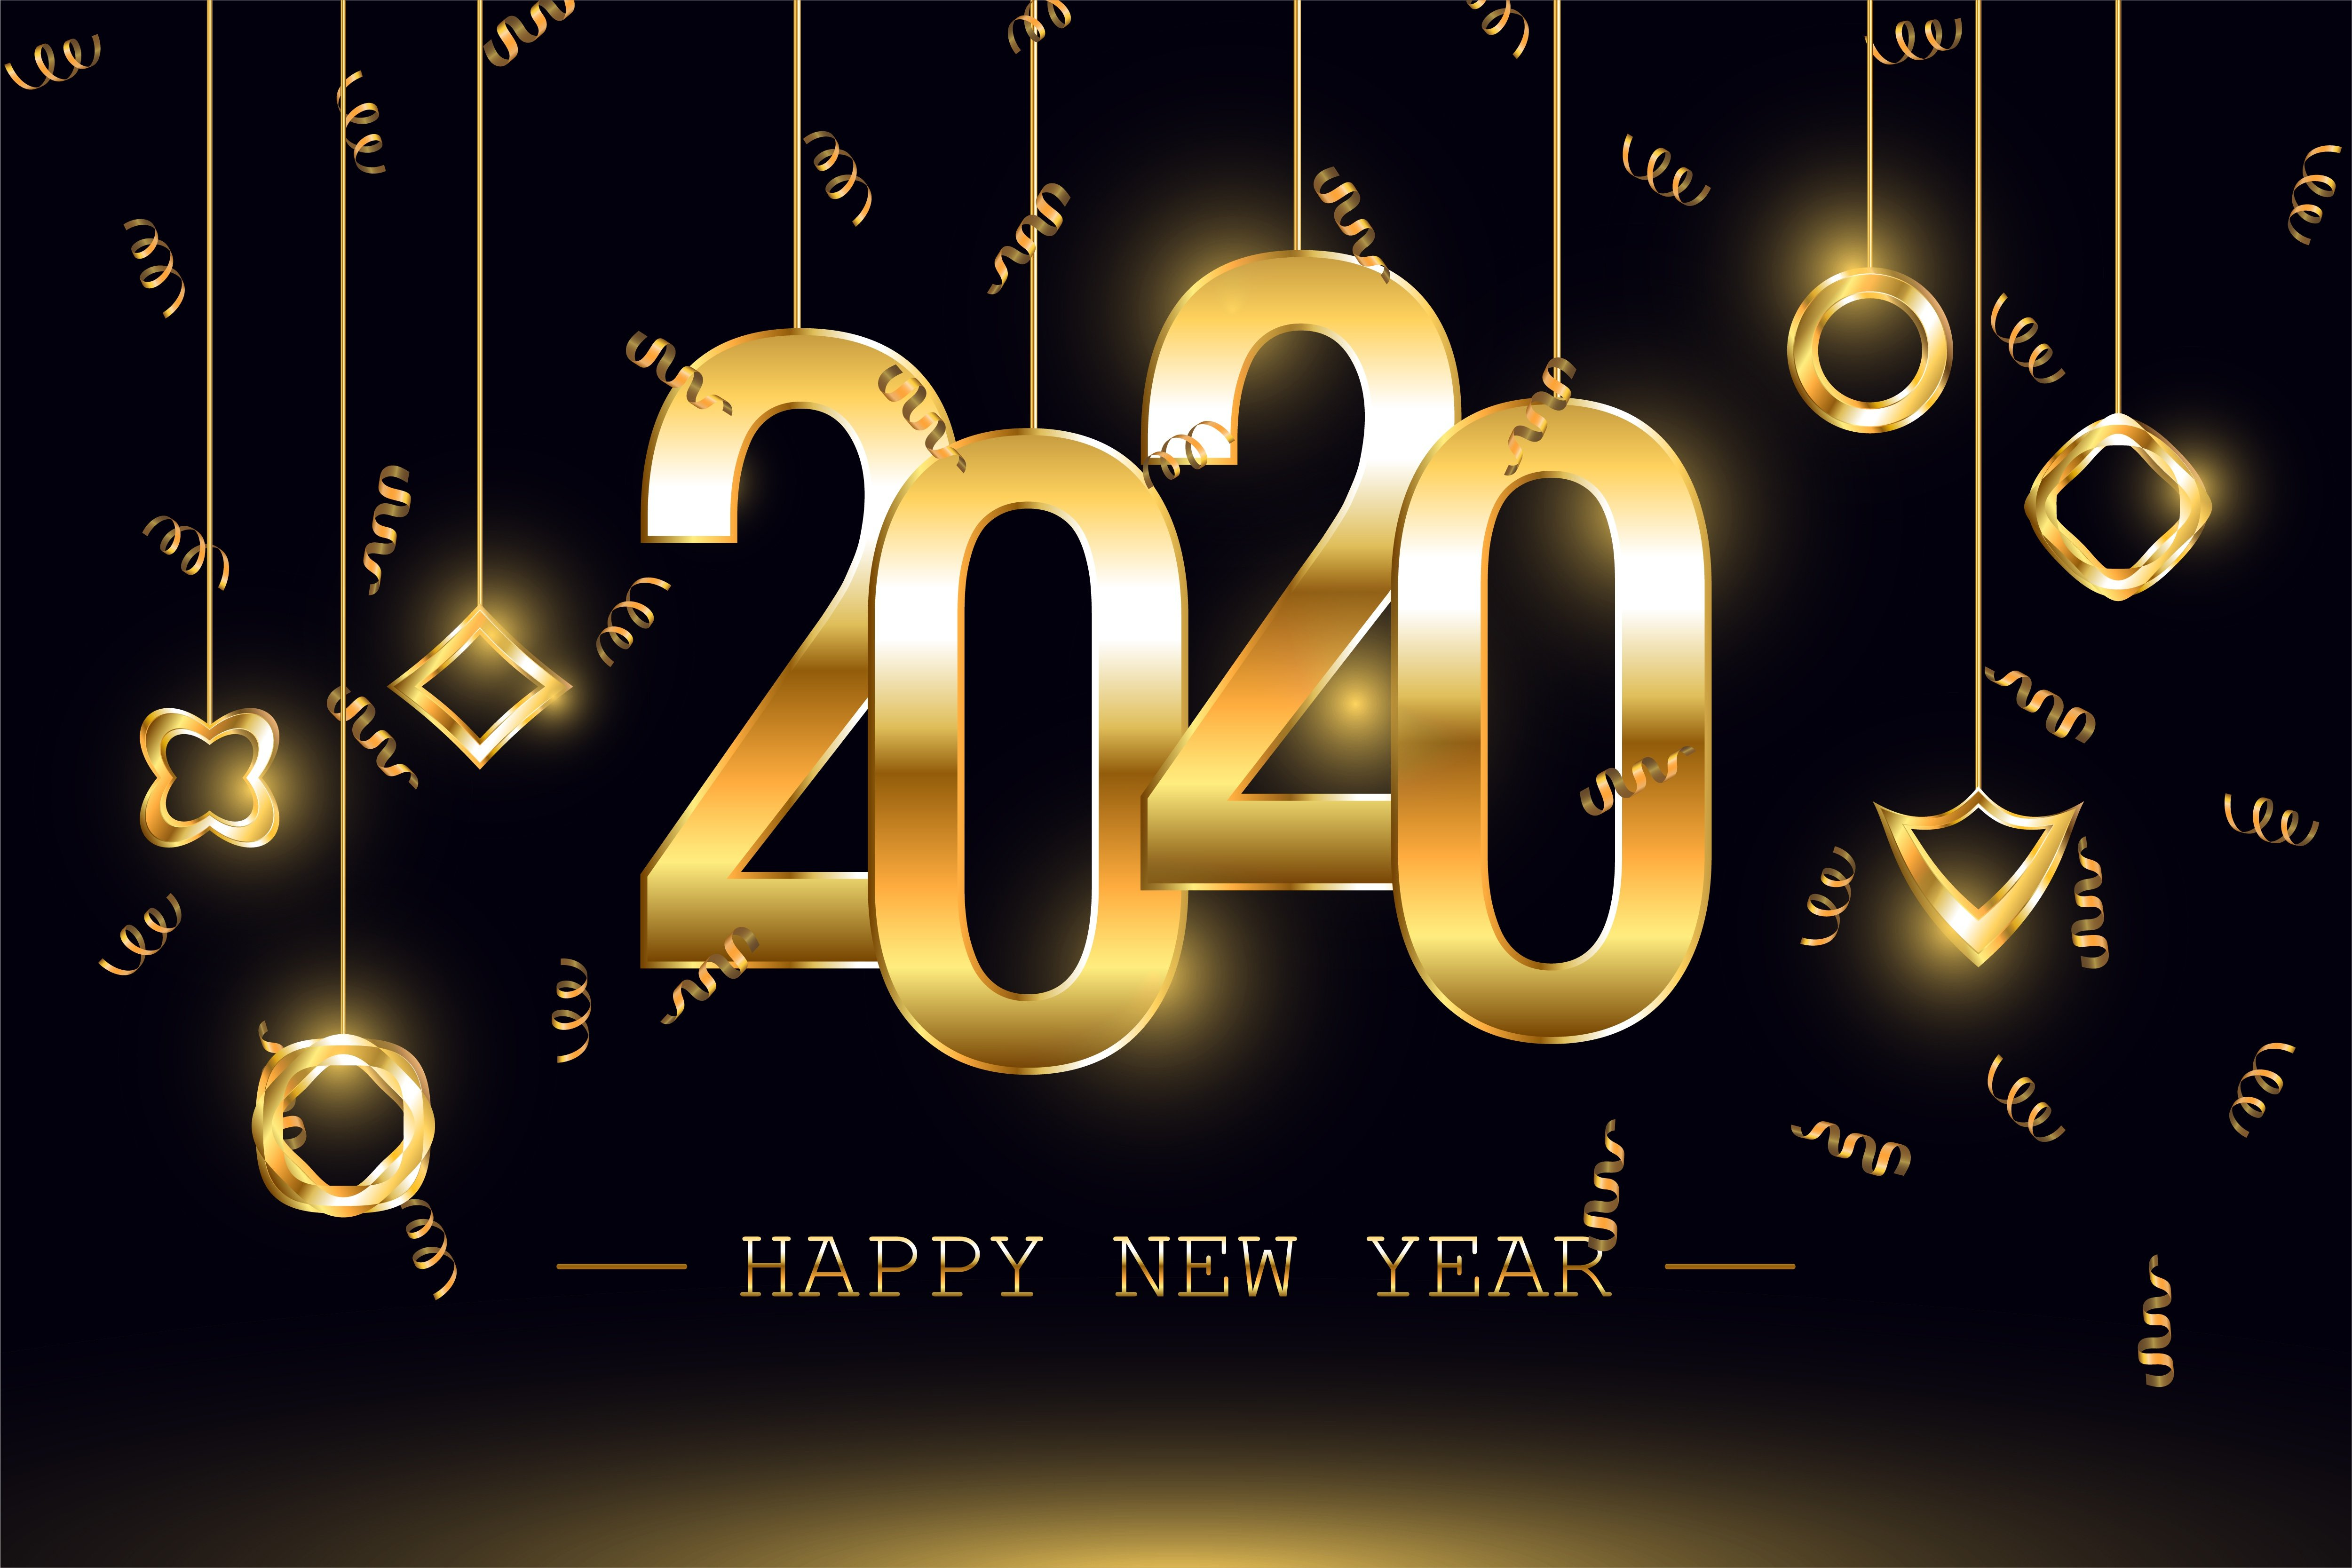 Happy New Year 2020 4k Wallpapers Wallpaper Cave